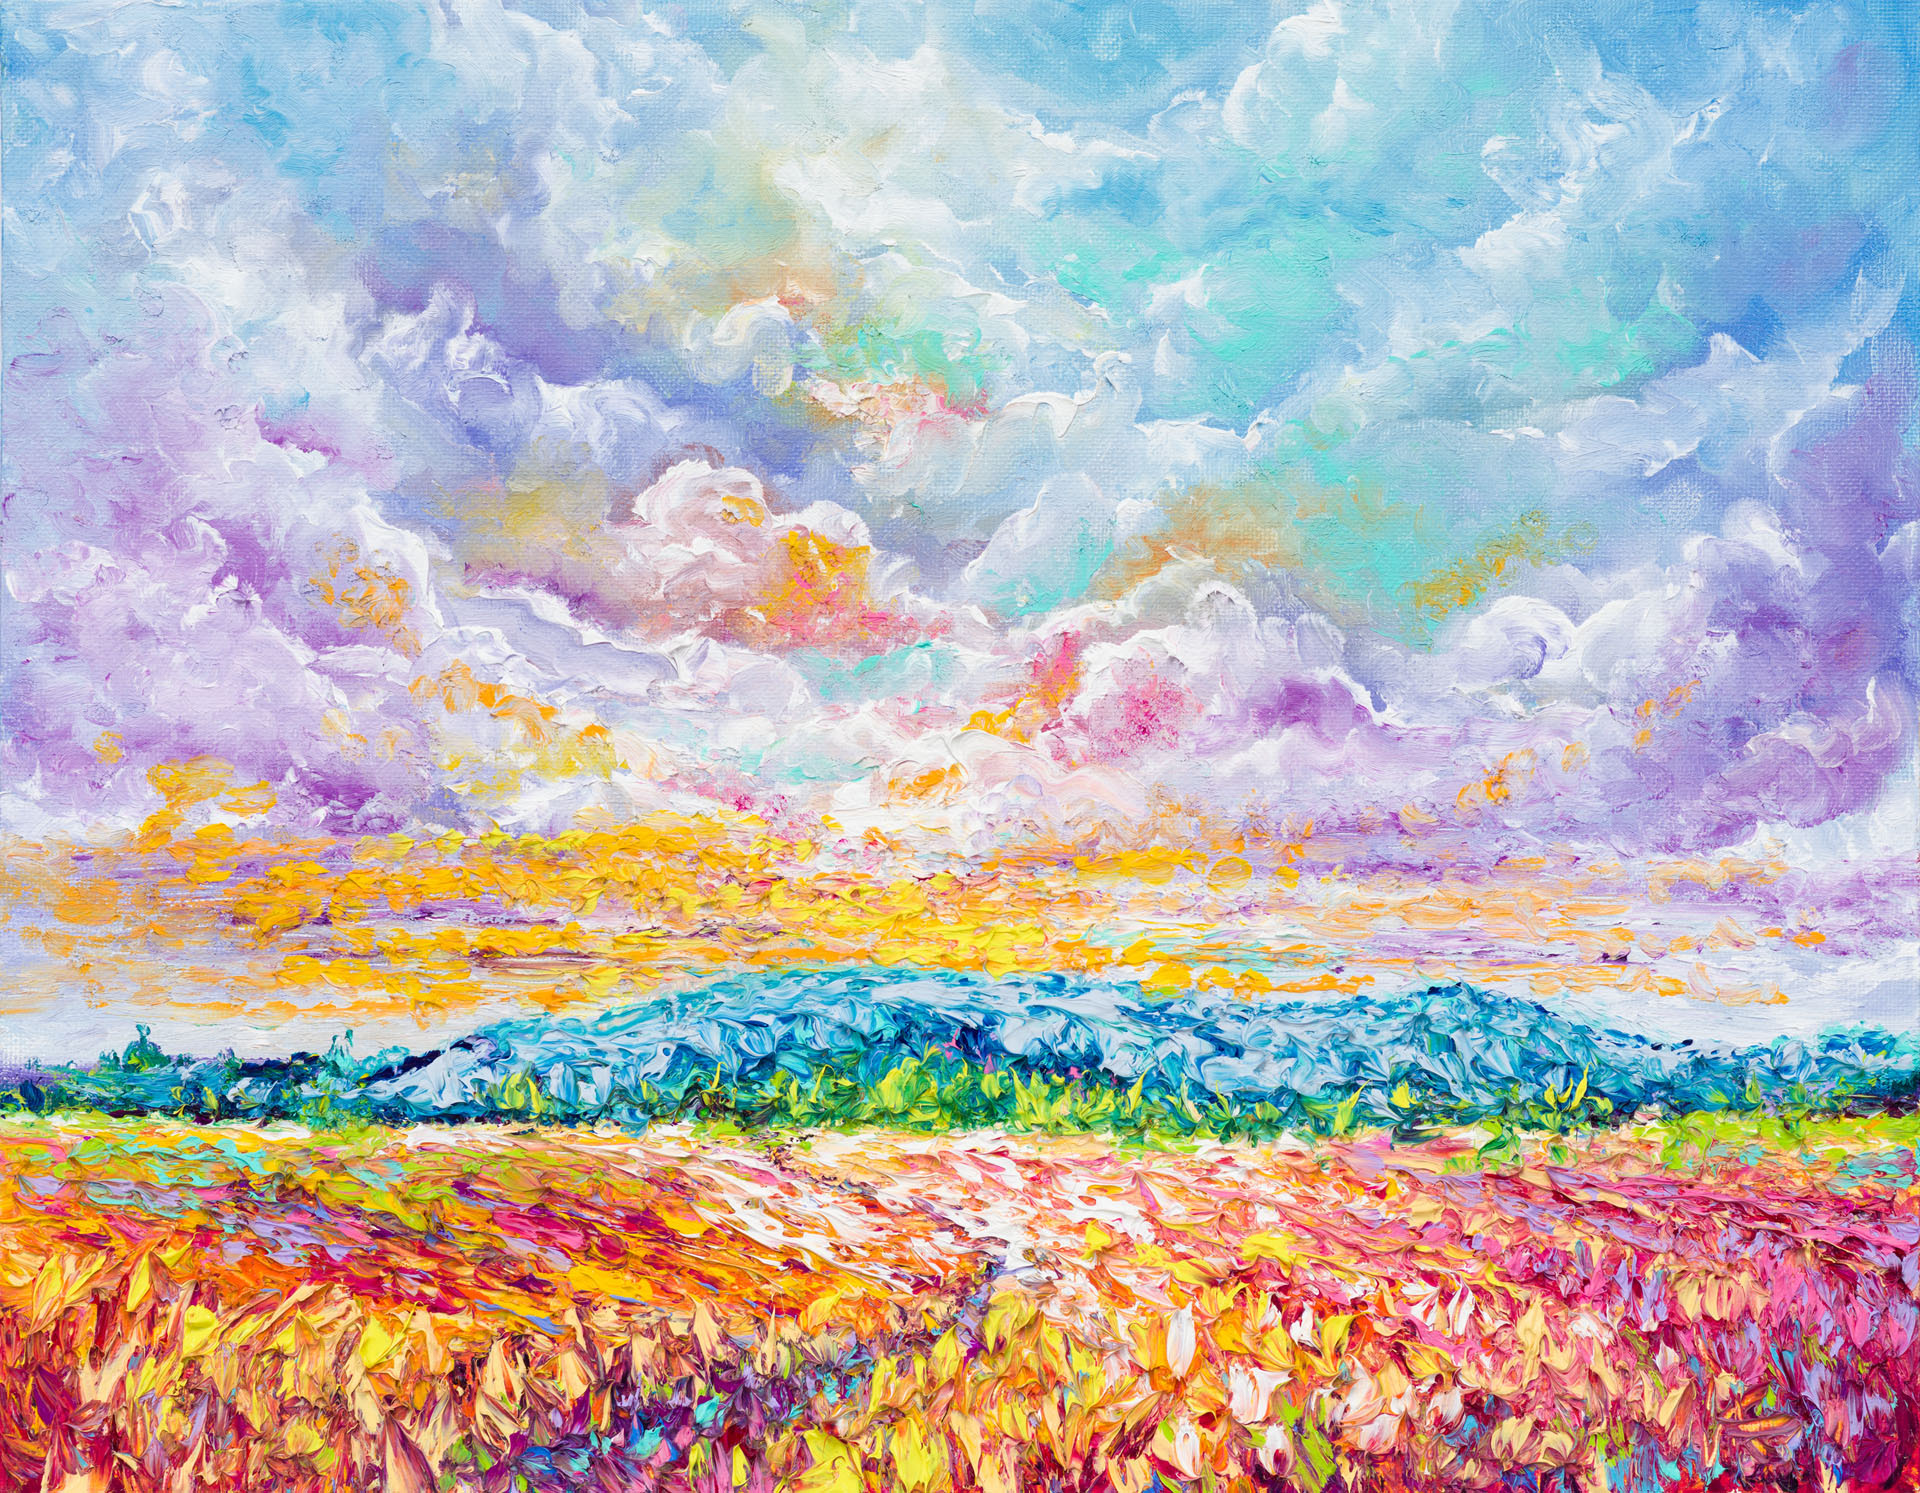 Kimberly Adams_Colorful Clouds_Oil_14 x 18_695.00.jpg